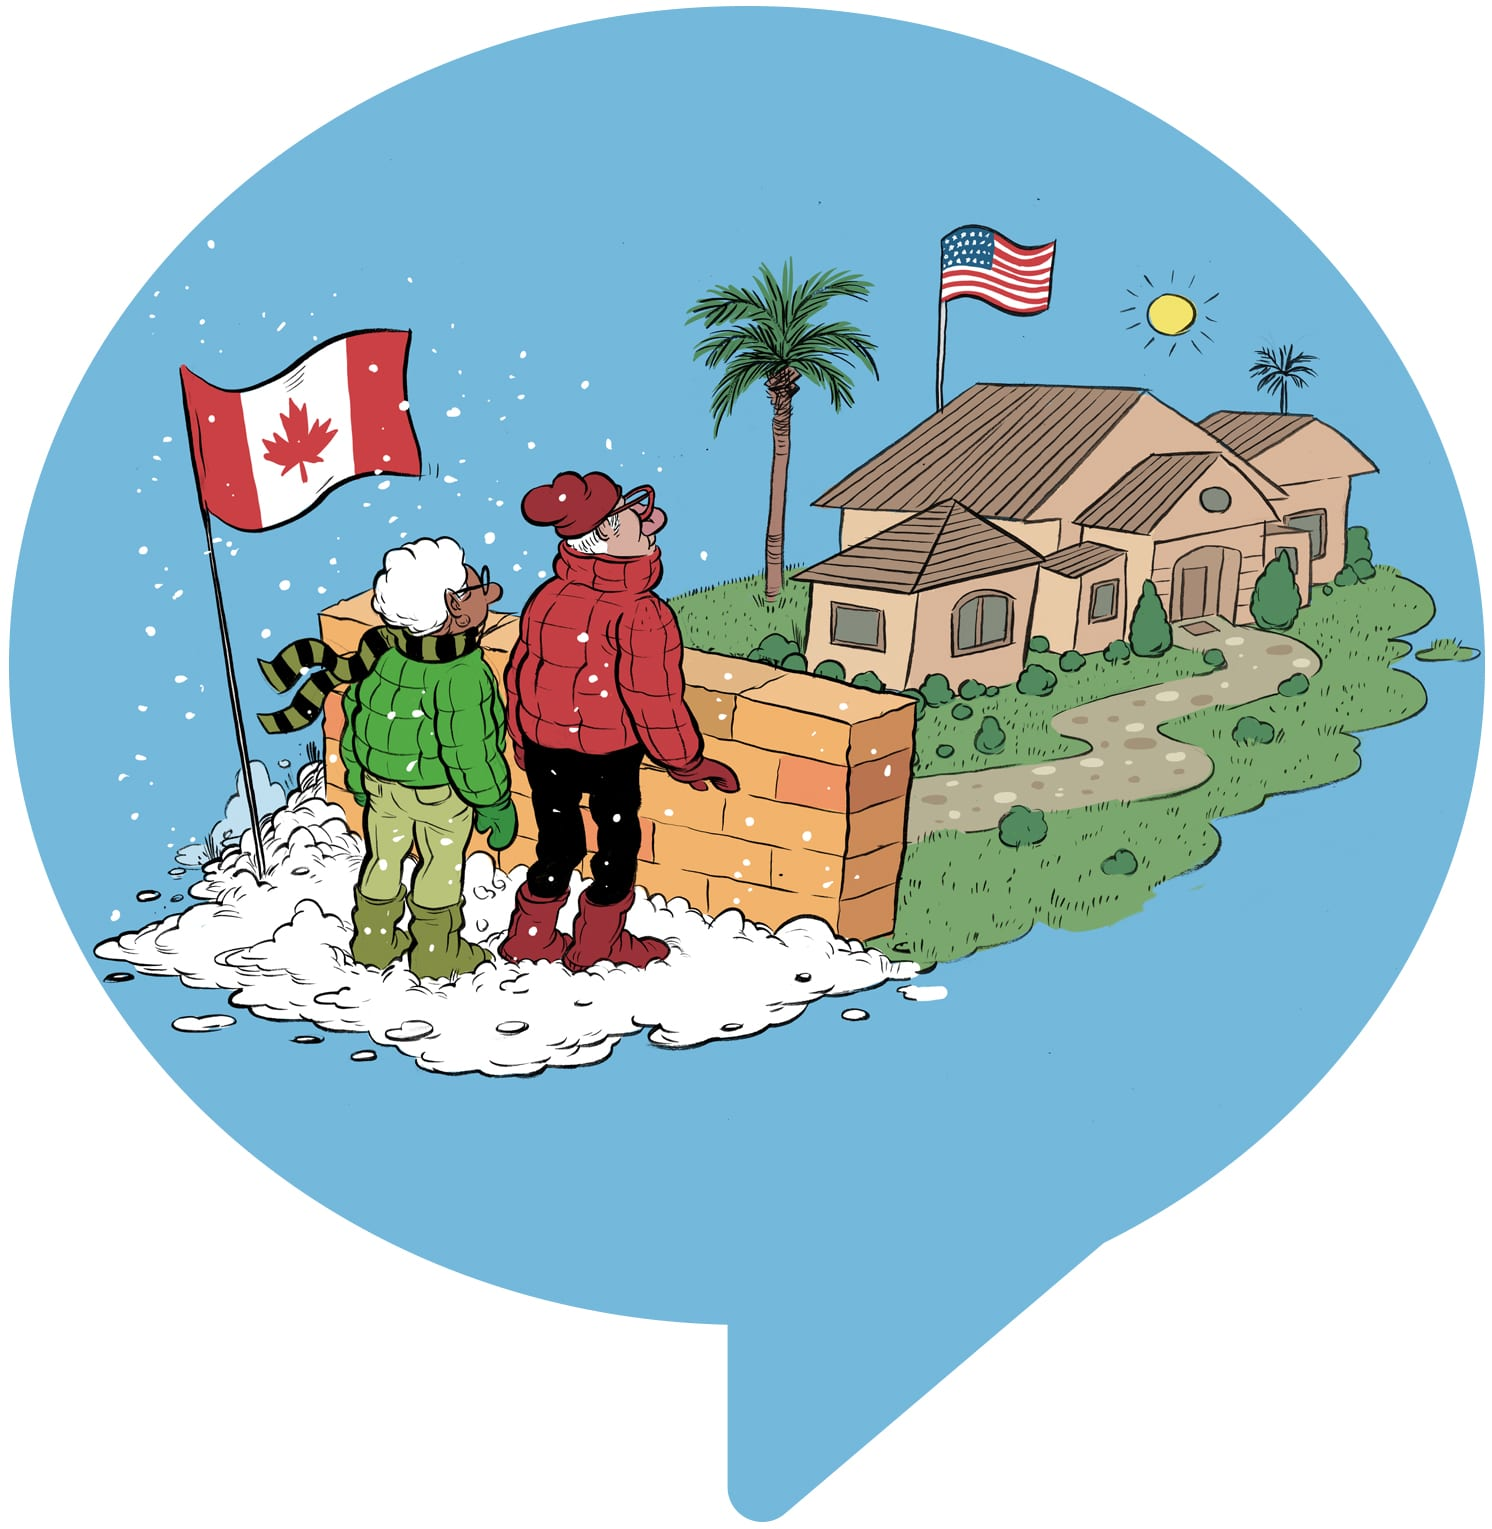 illustration of a canadian couple looking to cross the border to the us